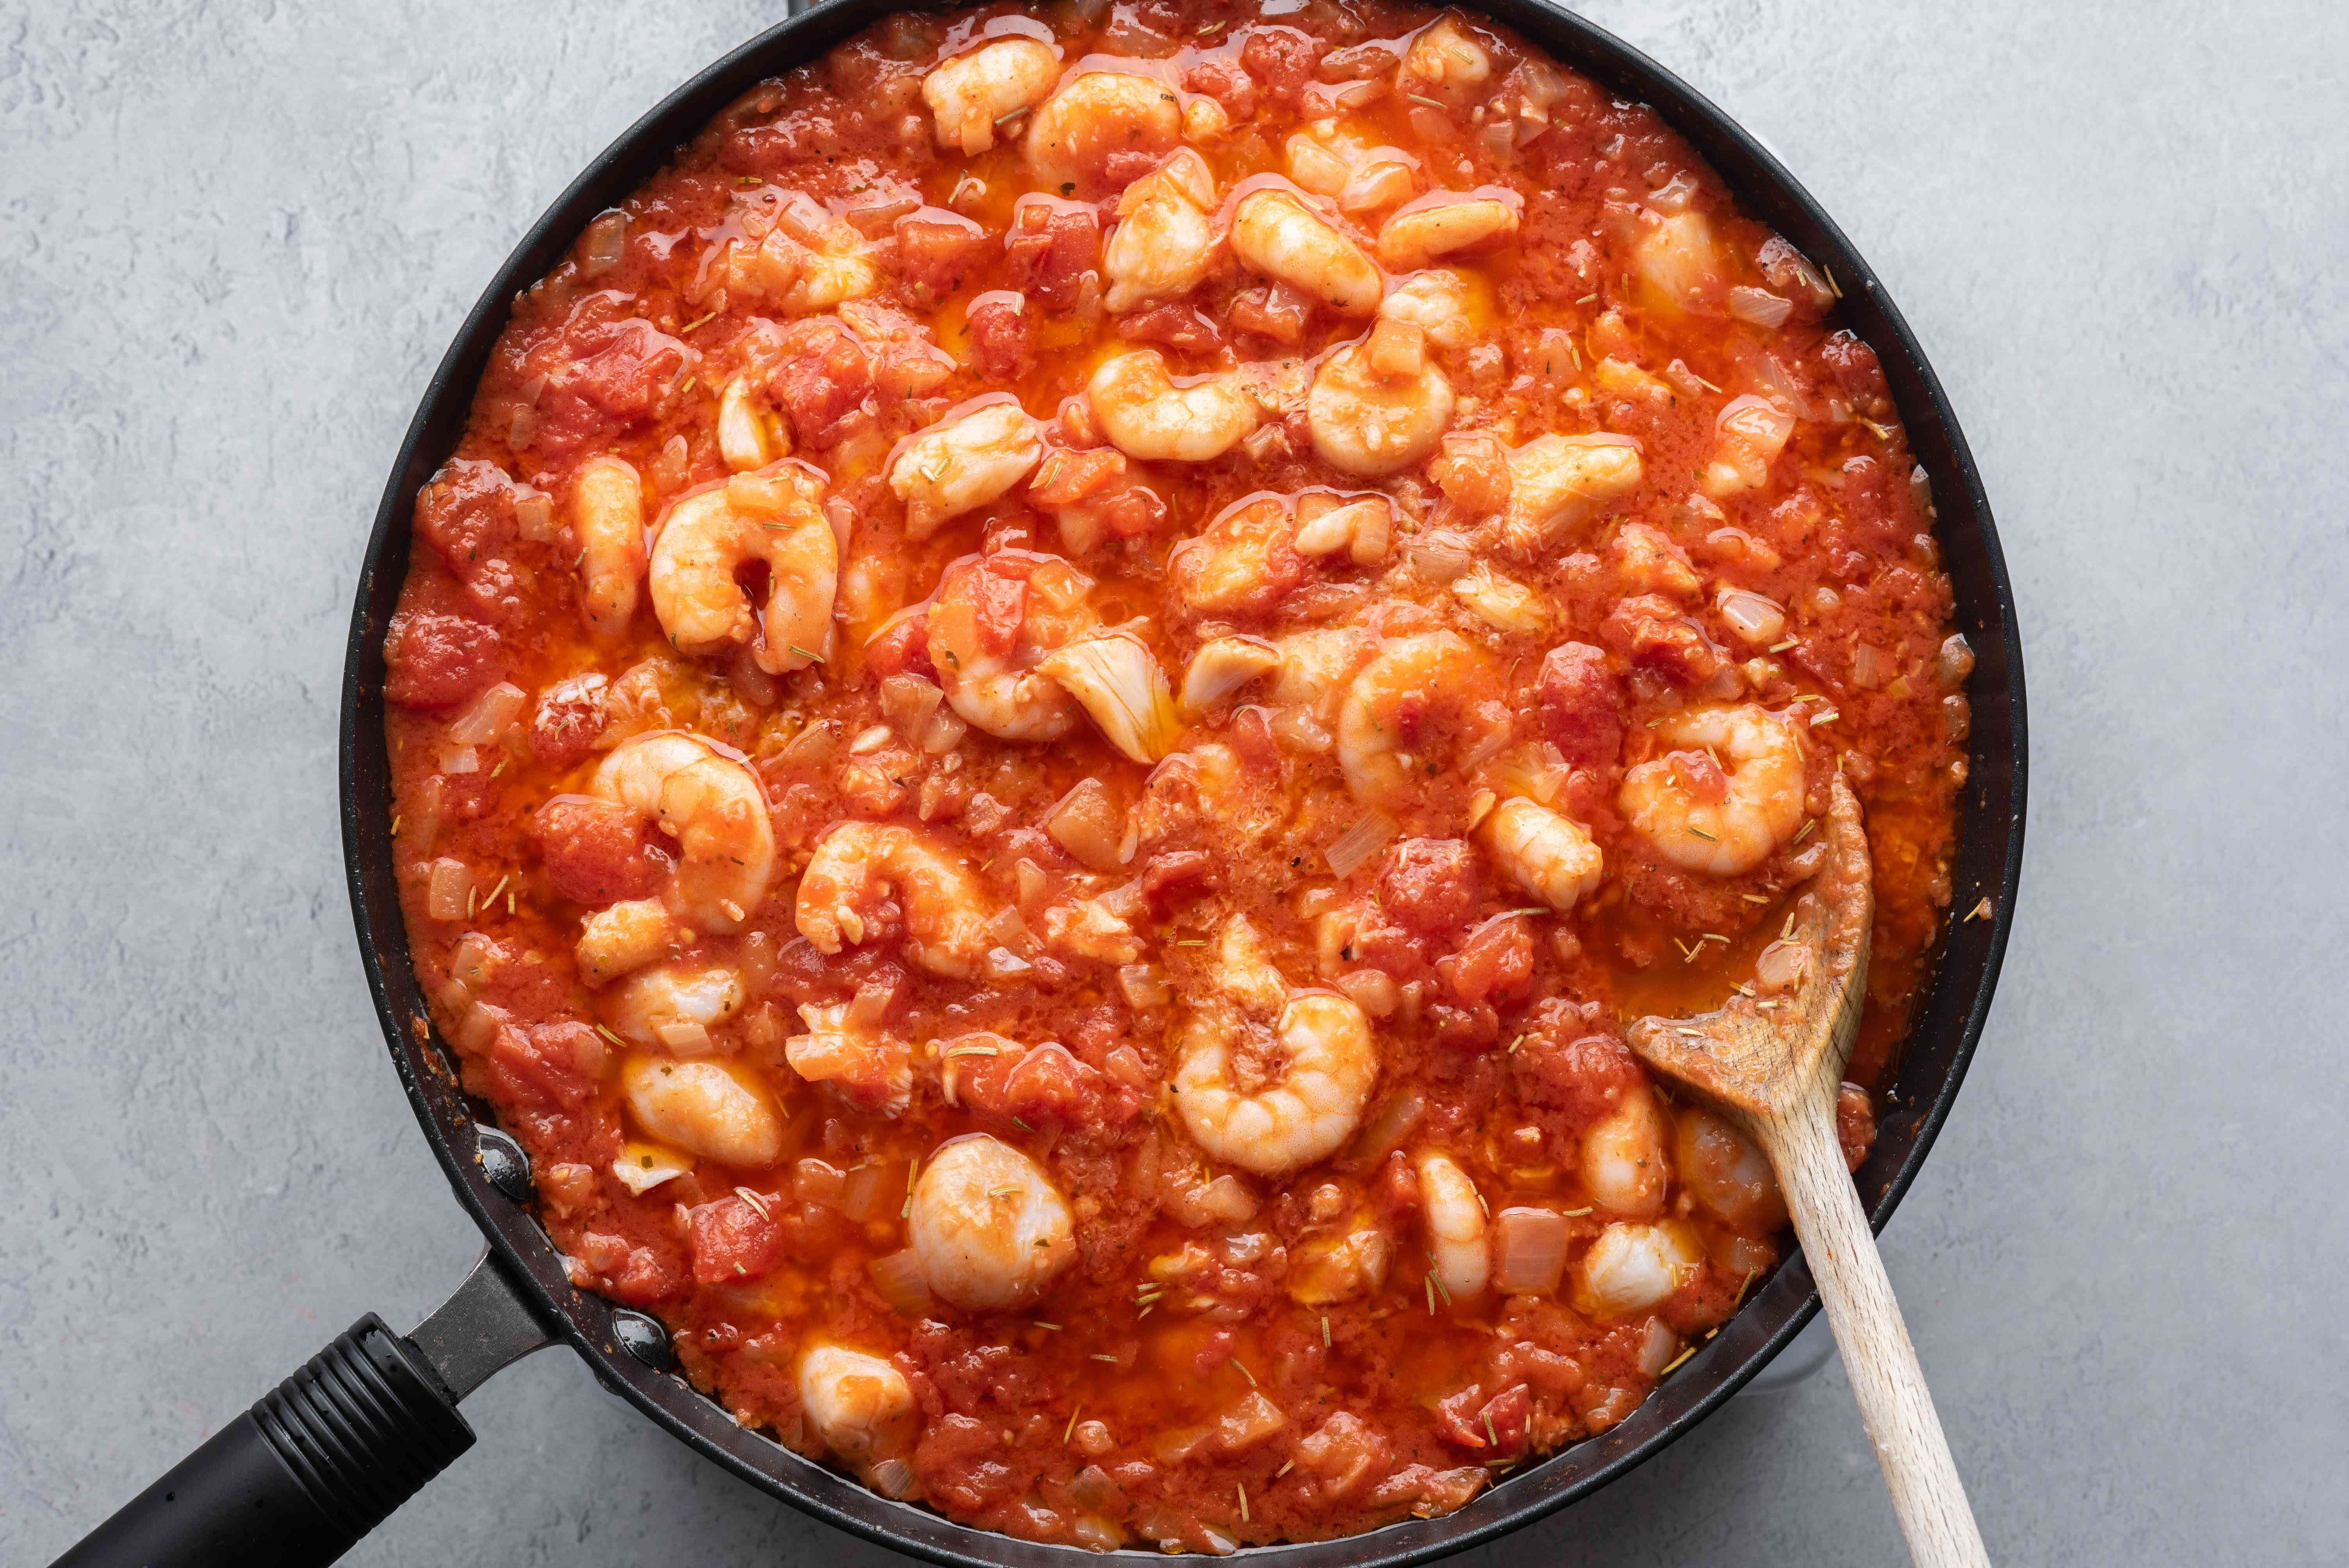 Seafood added to the tomato mixture in the pan